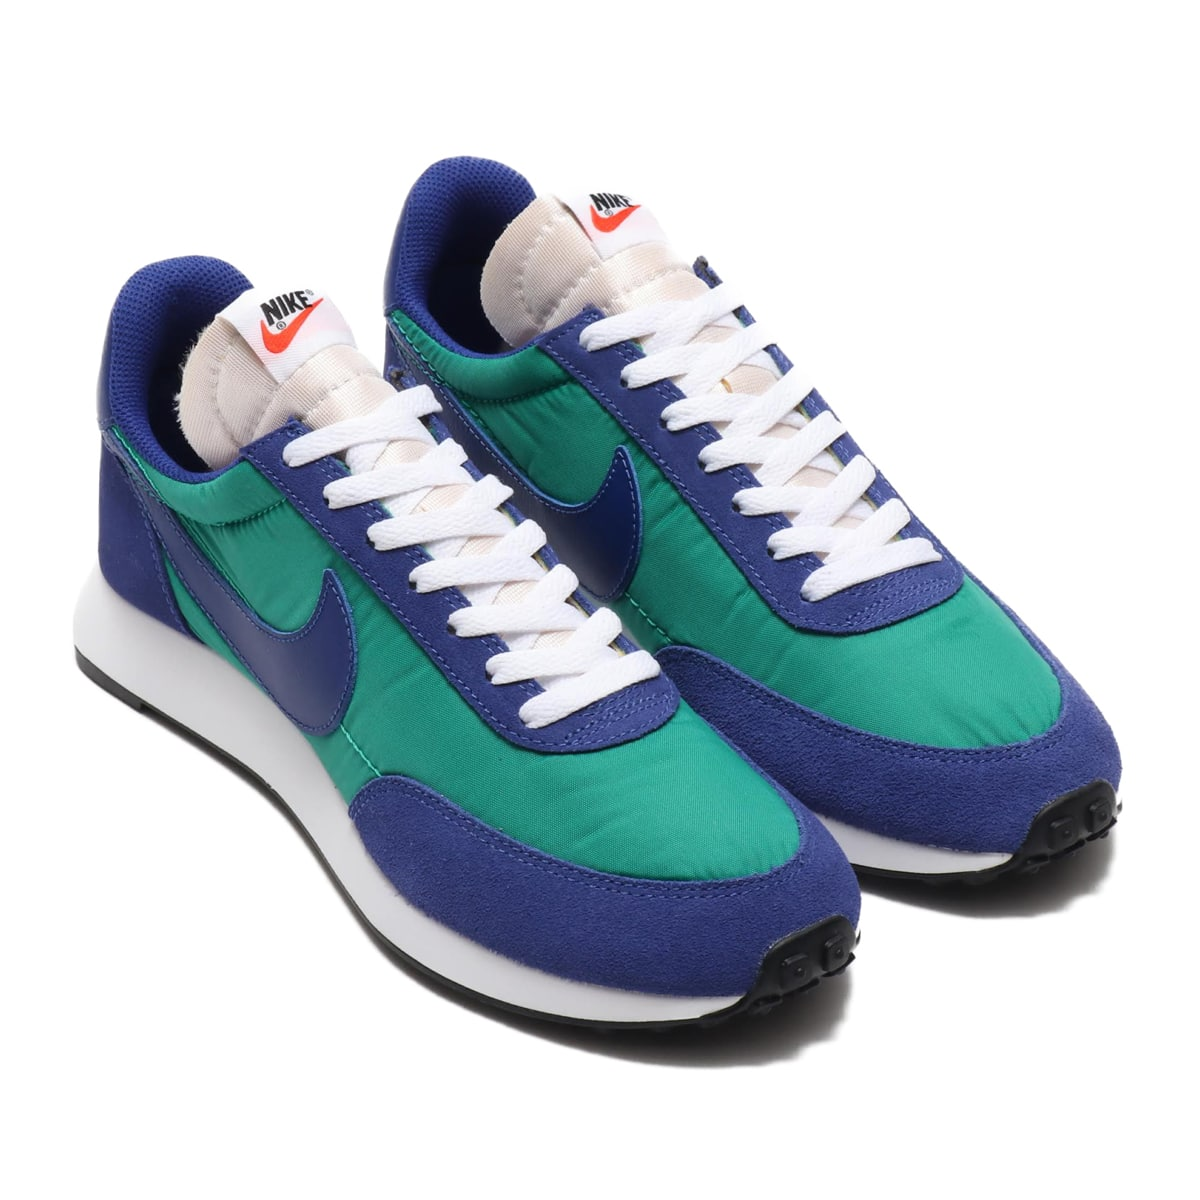 NIKE AIR TAILWIND 79 NEPTUNE GREEN/DEEP ROYAL BLUE-WHITE 20SP-S_photo_large